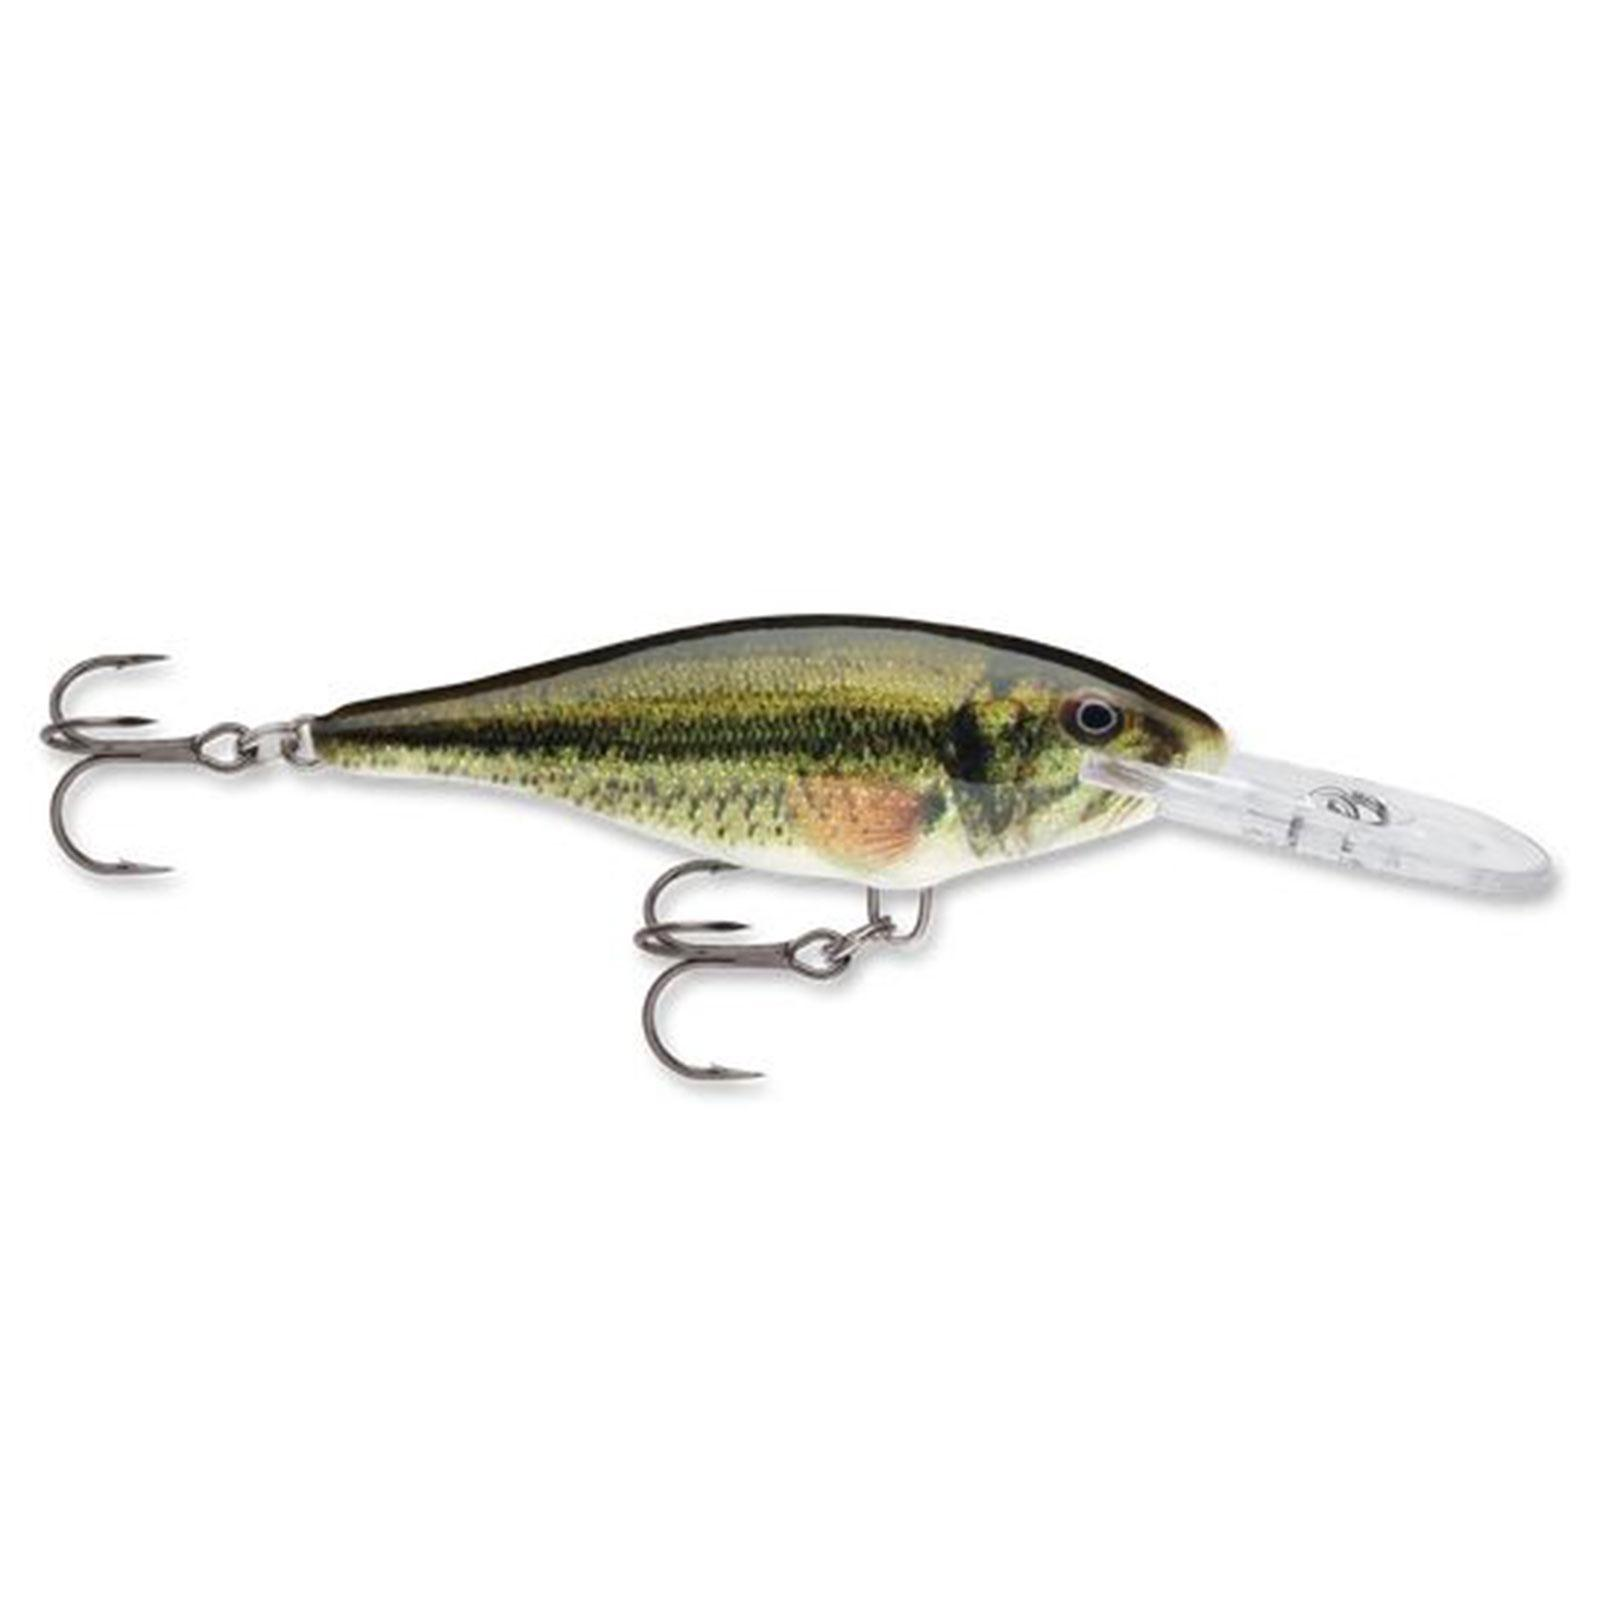 "Rapala 2"" Shad Rap Swimbait 3 16 Ounce Largemouth Bass, SR05LBL by Rapala"